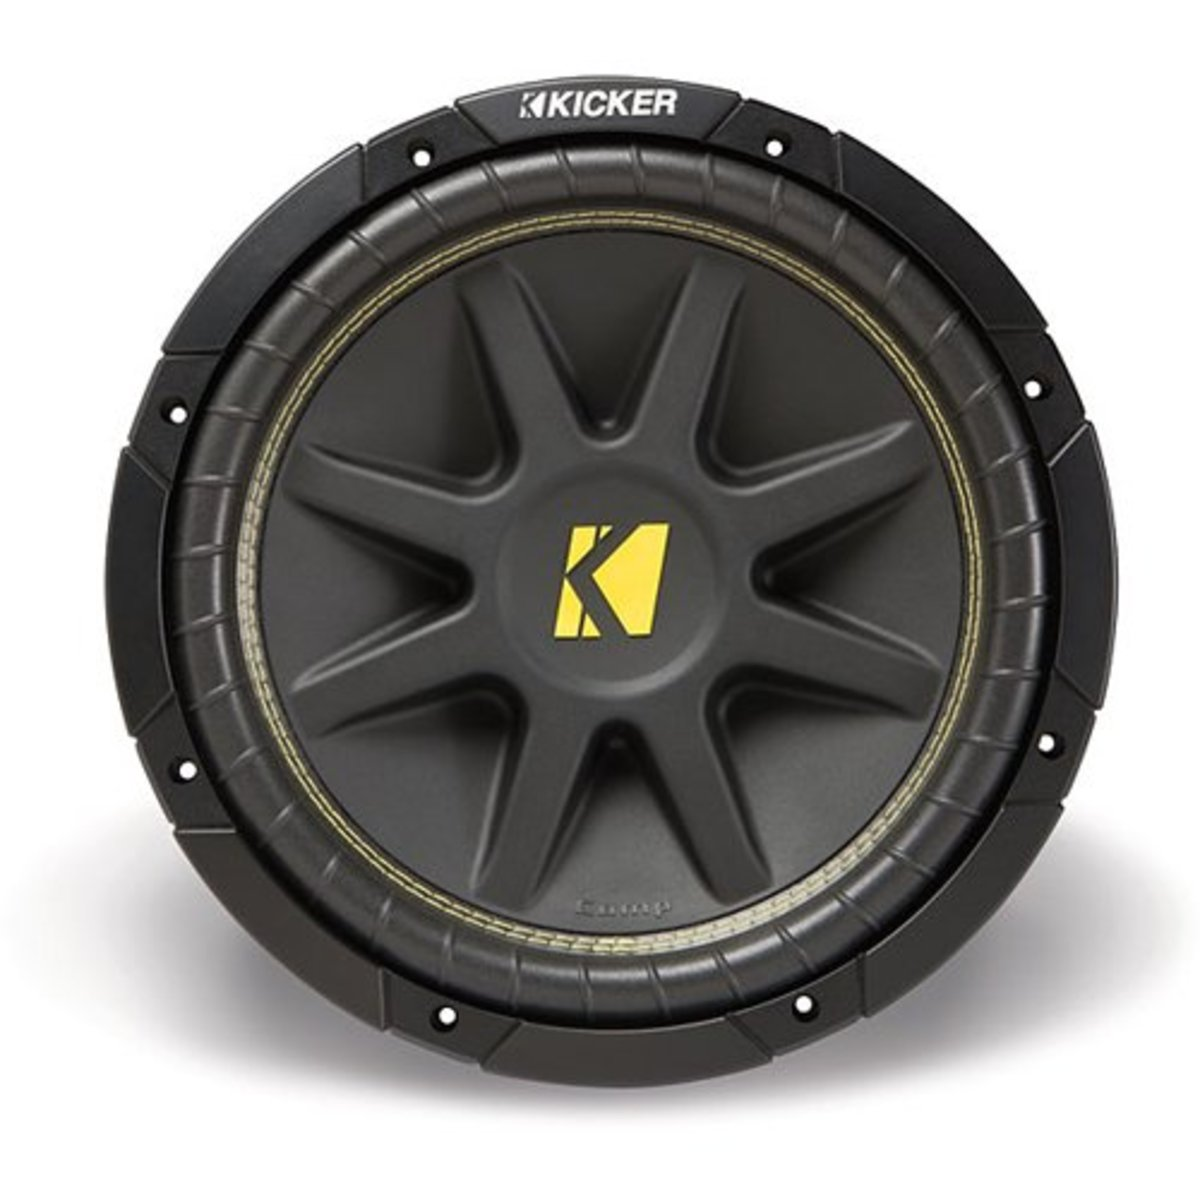 The Kicker 10C104 is the most popular budget sub on the market right now because of the features you get for what you pay.